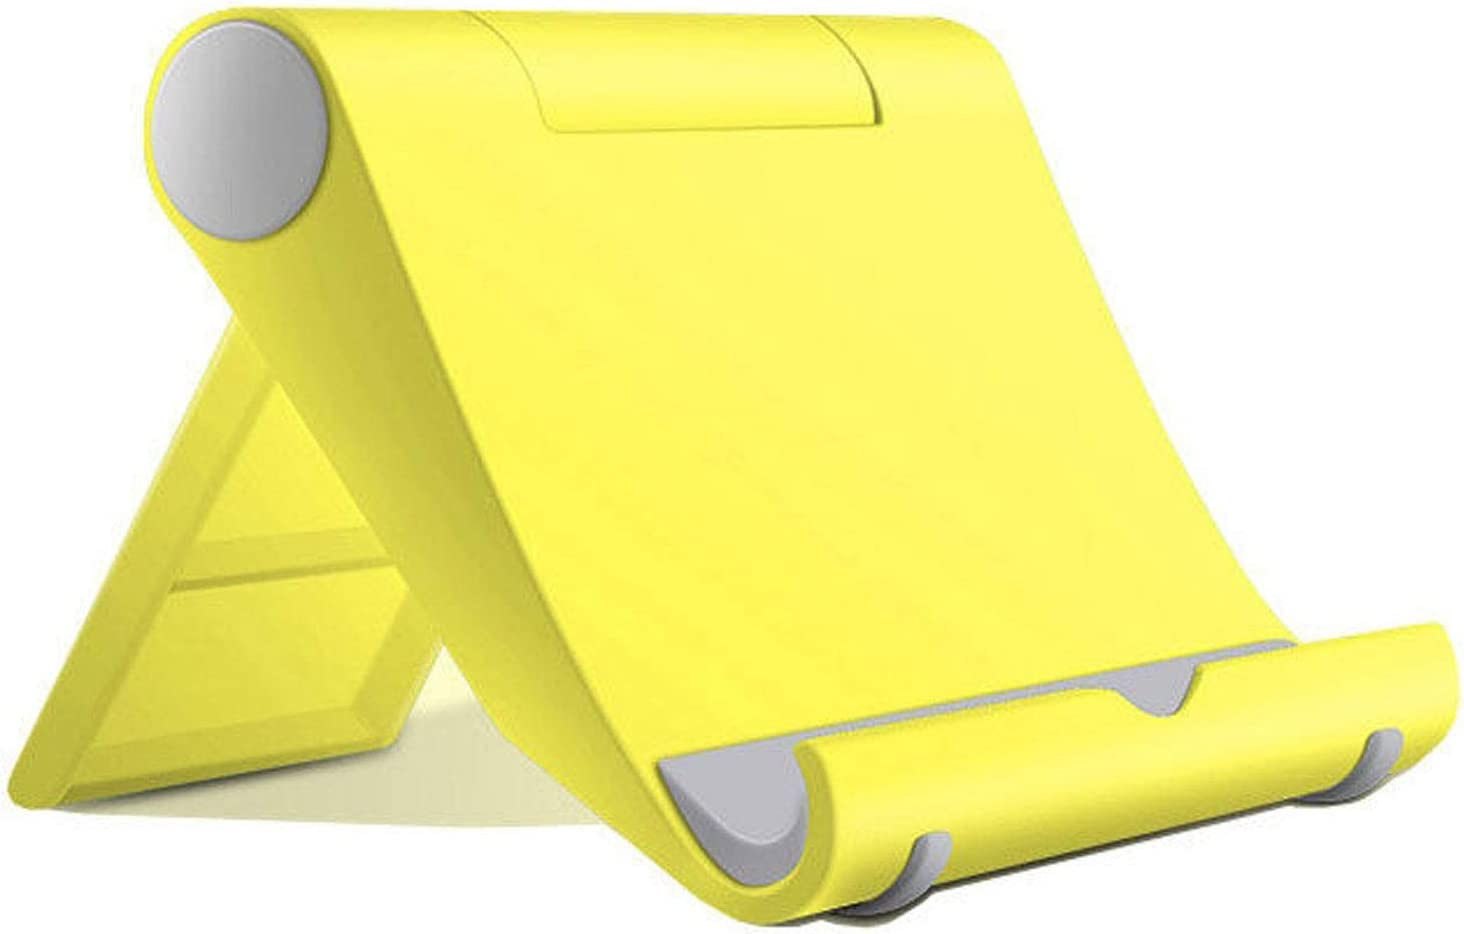 Listar Cell Phone Stand for Desk Foldable, Desk Phone Holder Stand for Office Kitchen Travel, Mobile Phone Stand for iPhone Stand Phone Dock Cradle Compatible with iPad Switch, All Smartphone (Yellow)